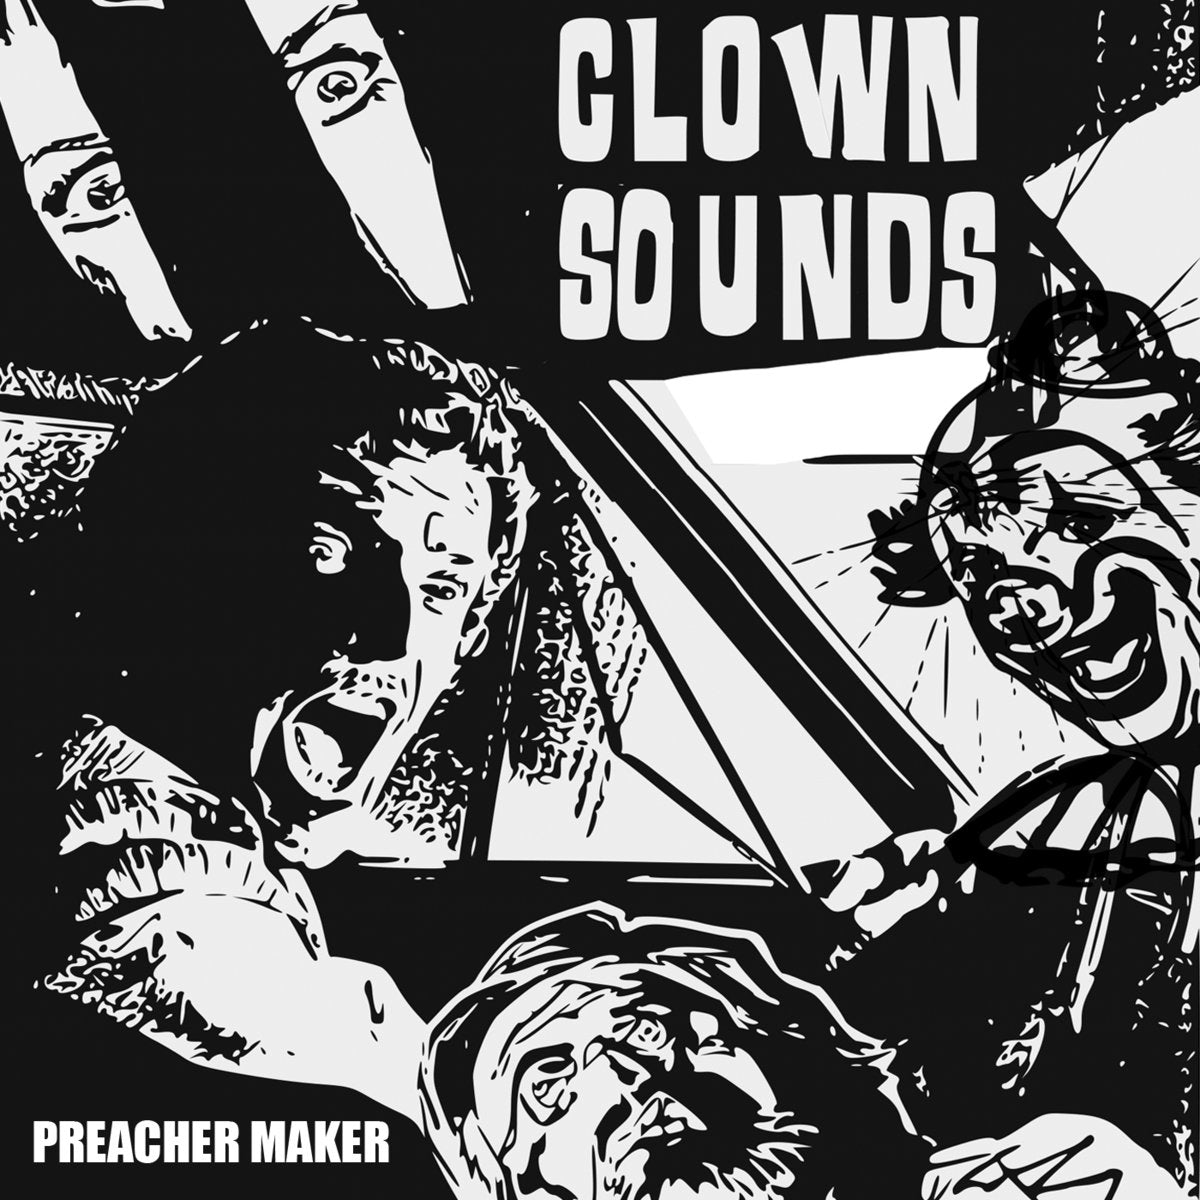 Clown Sounds - Preacher Maker LP - Vinyl